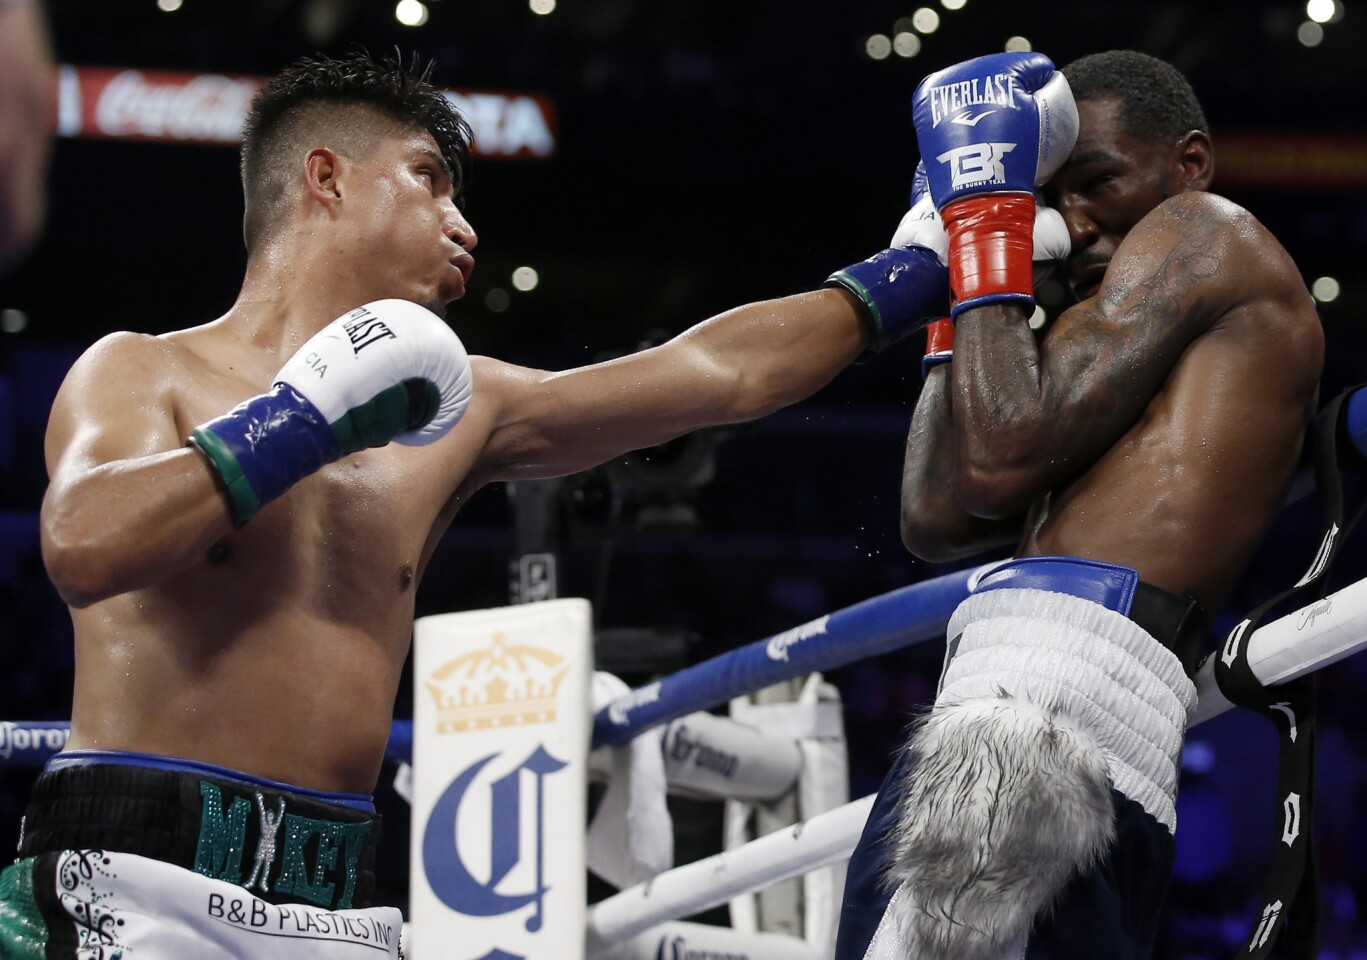 Mikey Garcia hits Robert Easter Jr. with a jab during the 11th round in their WBC and IBF world lightweight title bout in Los Angeles, Saturday, July 28, 2018. Garcia won by unanimous decision.